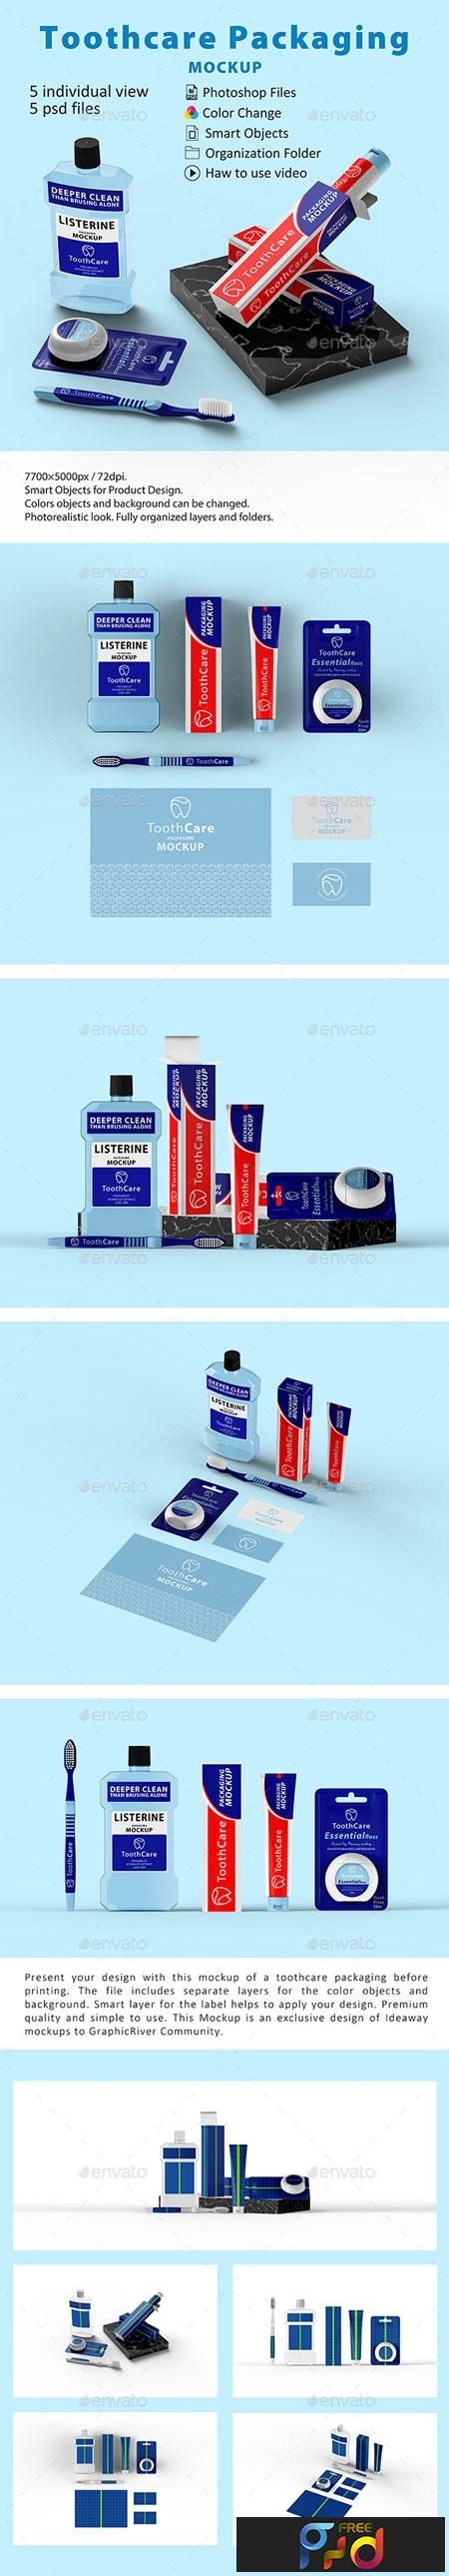 Toothcare Packaging Mockup 22723216 1